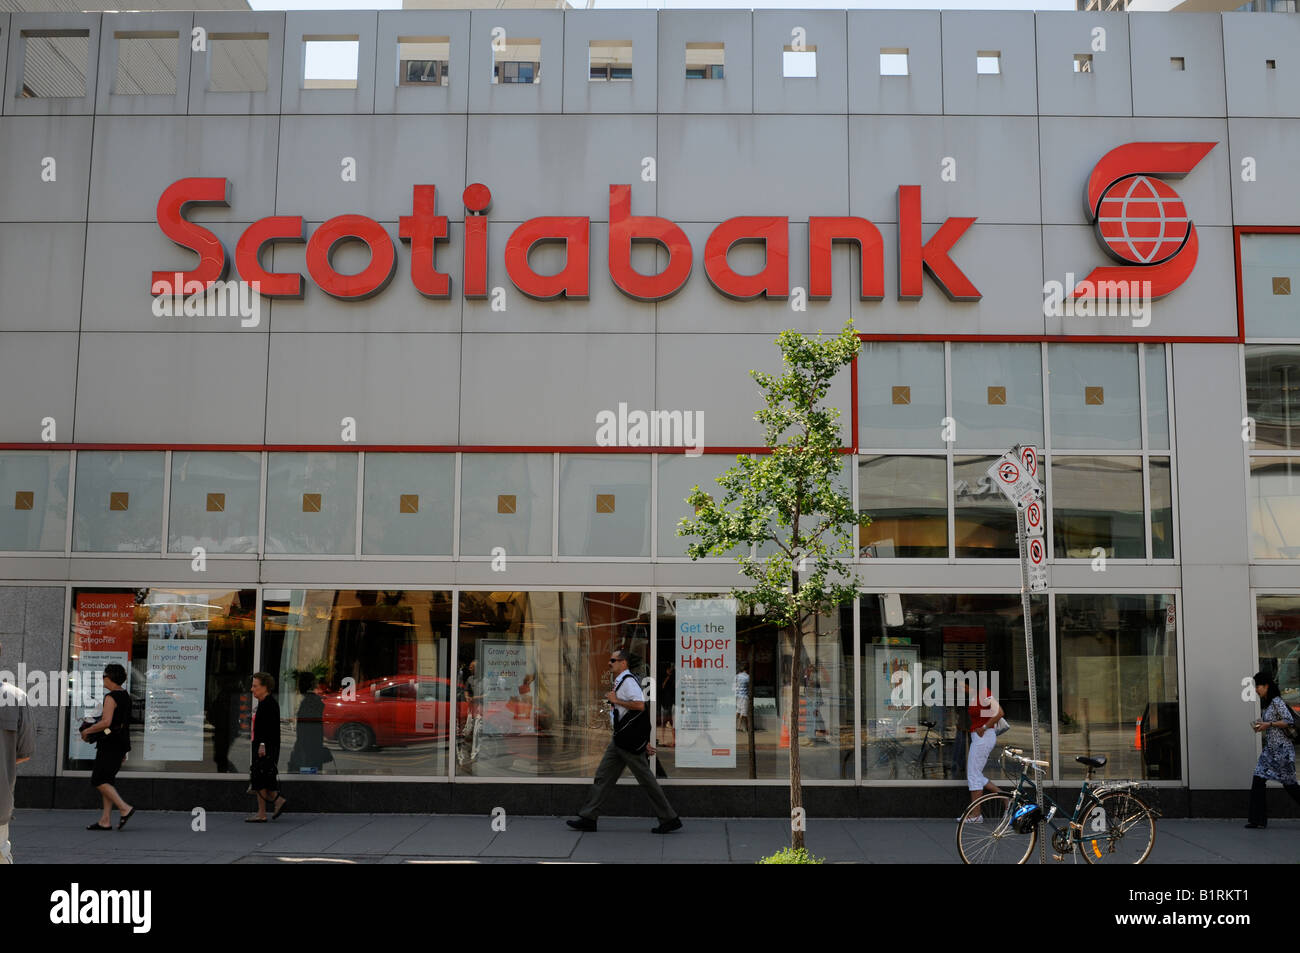 Scotiabank Branch, Bloor and Balmuto Streets, Toronto, Ontario, Canada - Stock Image